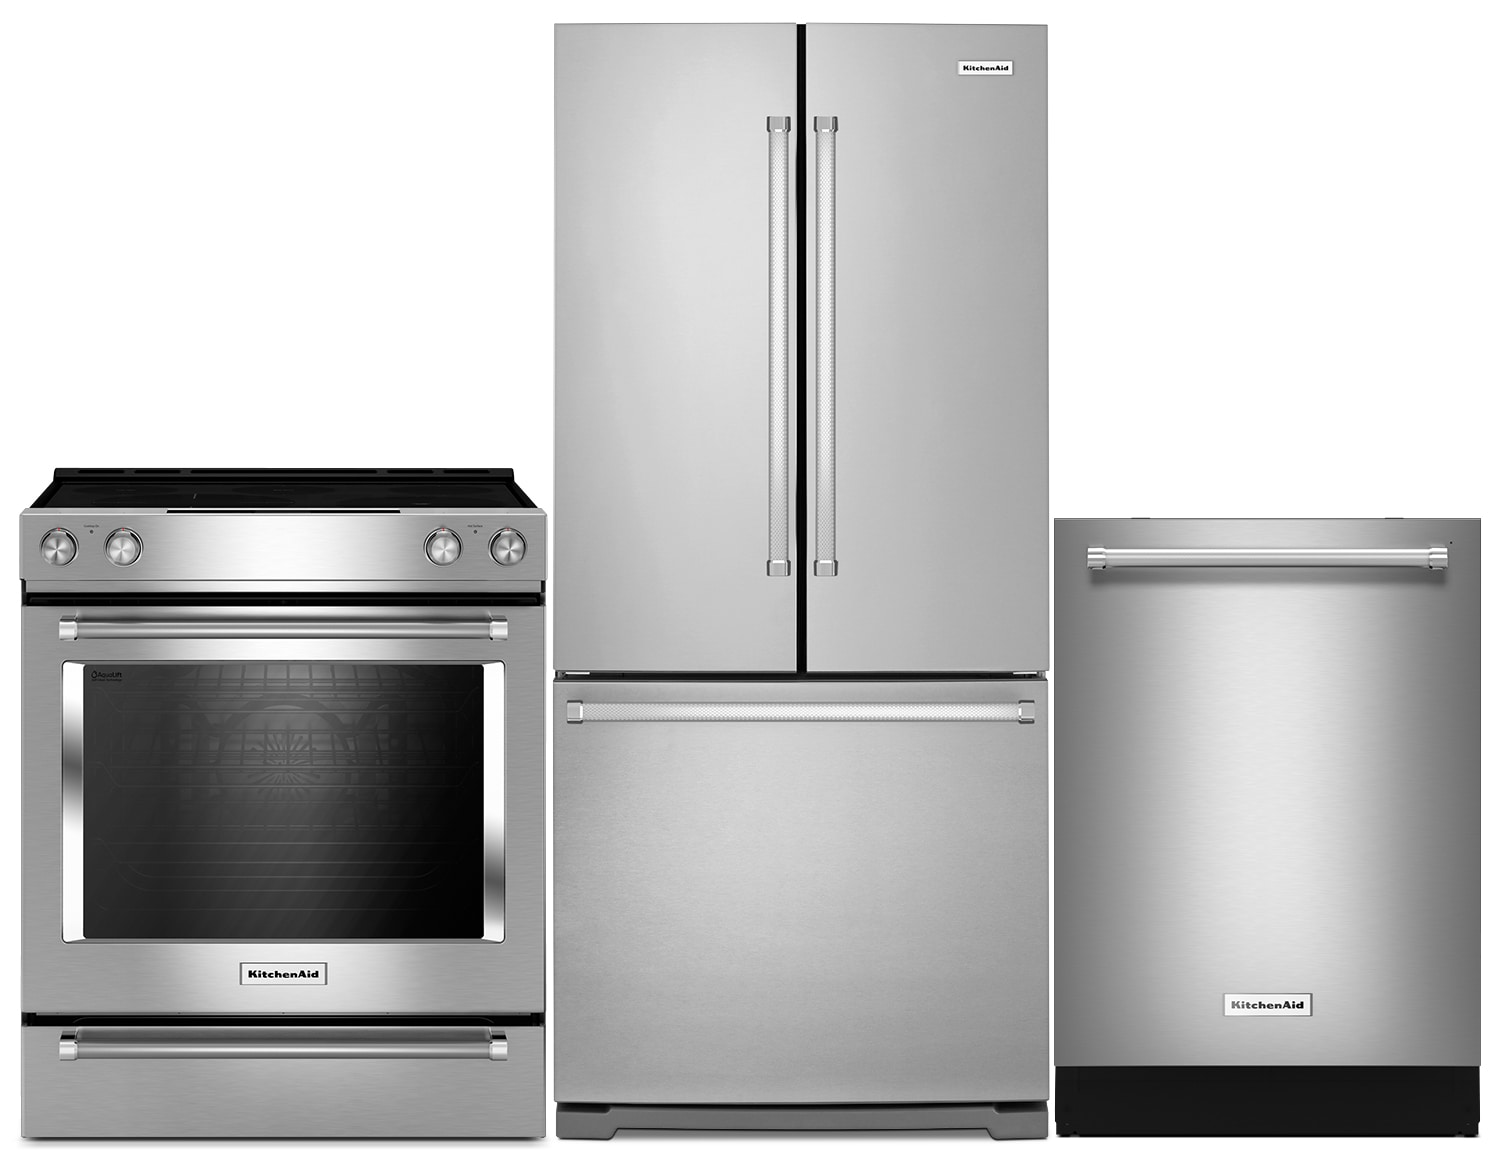 KitchenAid 19.7 Cu. Ft. Refrigerator, 6.4 Cu. Ft. Range and Built-In Dishwasher – Stainless Steel